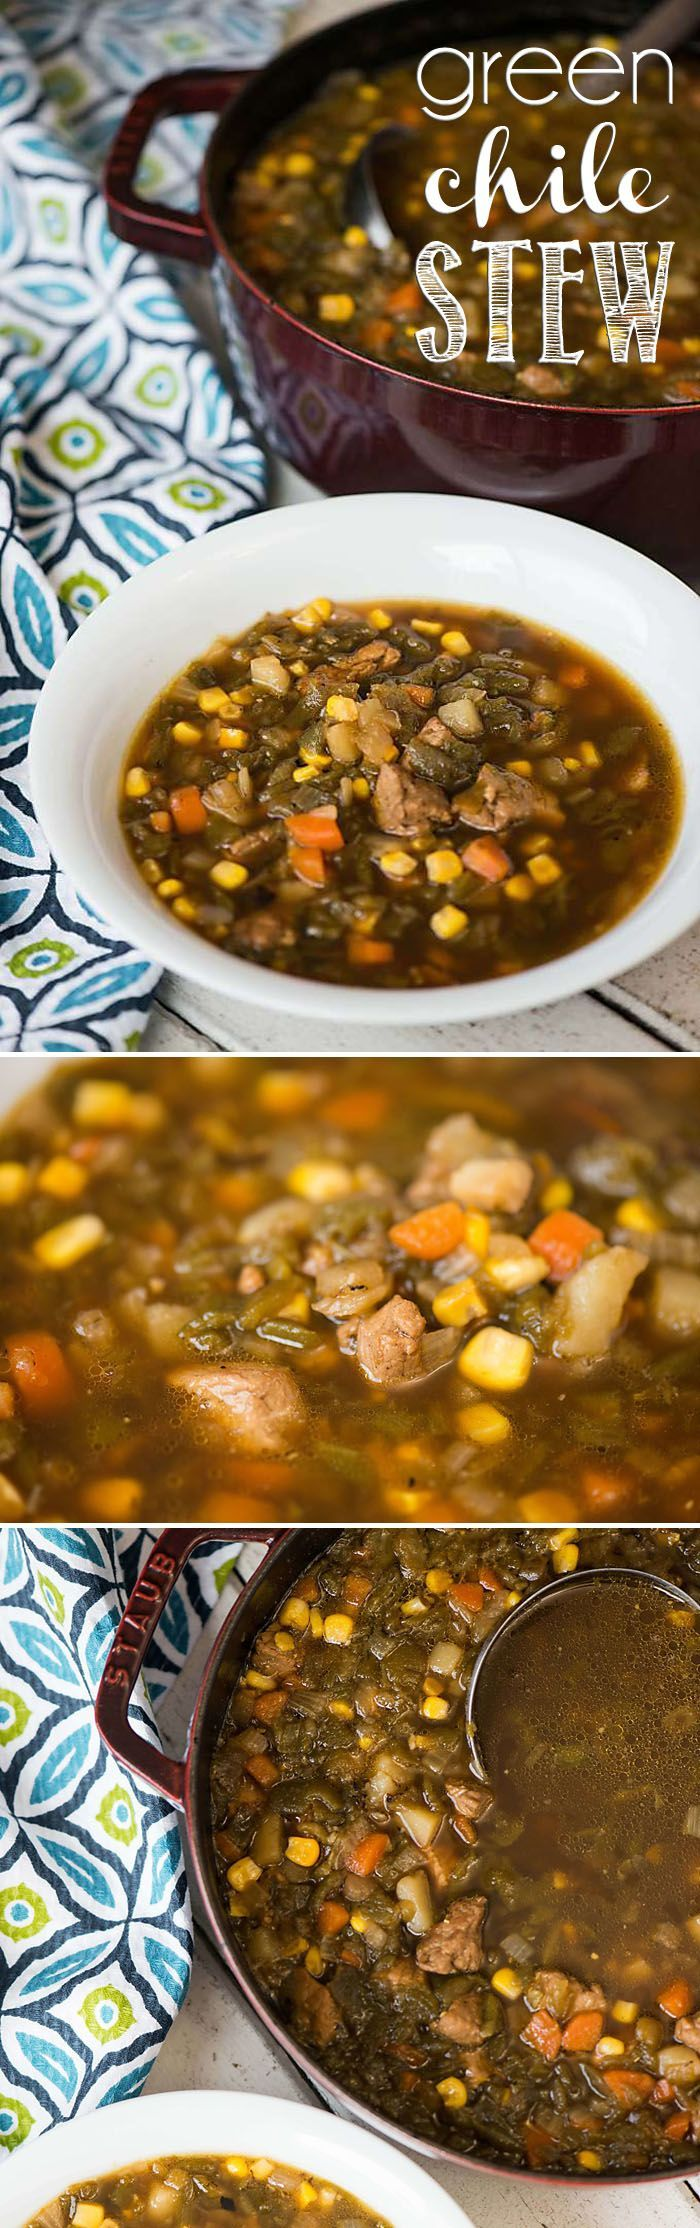 My Green Chile Stew, made with New Mexican roasted Hatch green chile, pork tenderloin, potatoes and corn, is the ultimate spicy and healthy comfort food! #stew #soup #greenchile